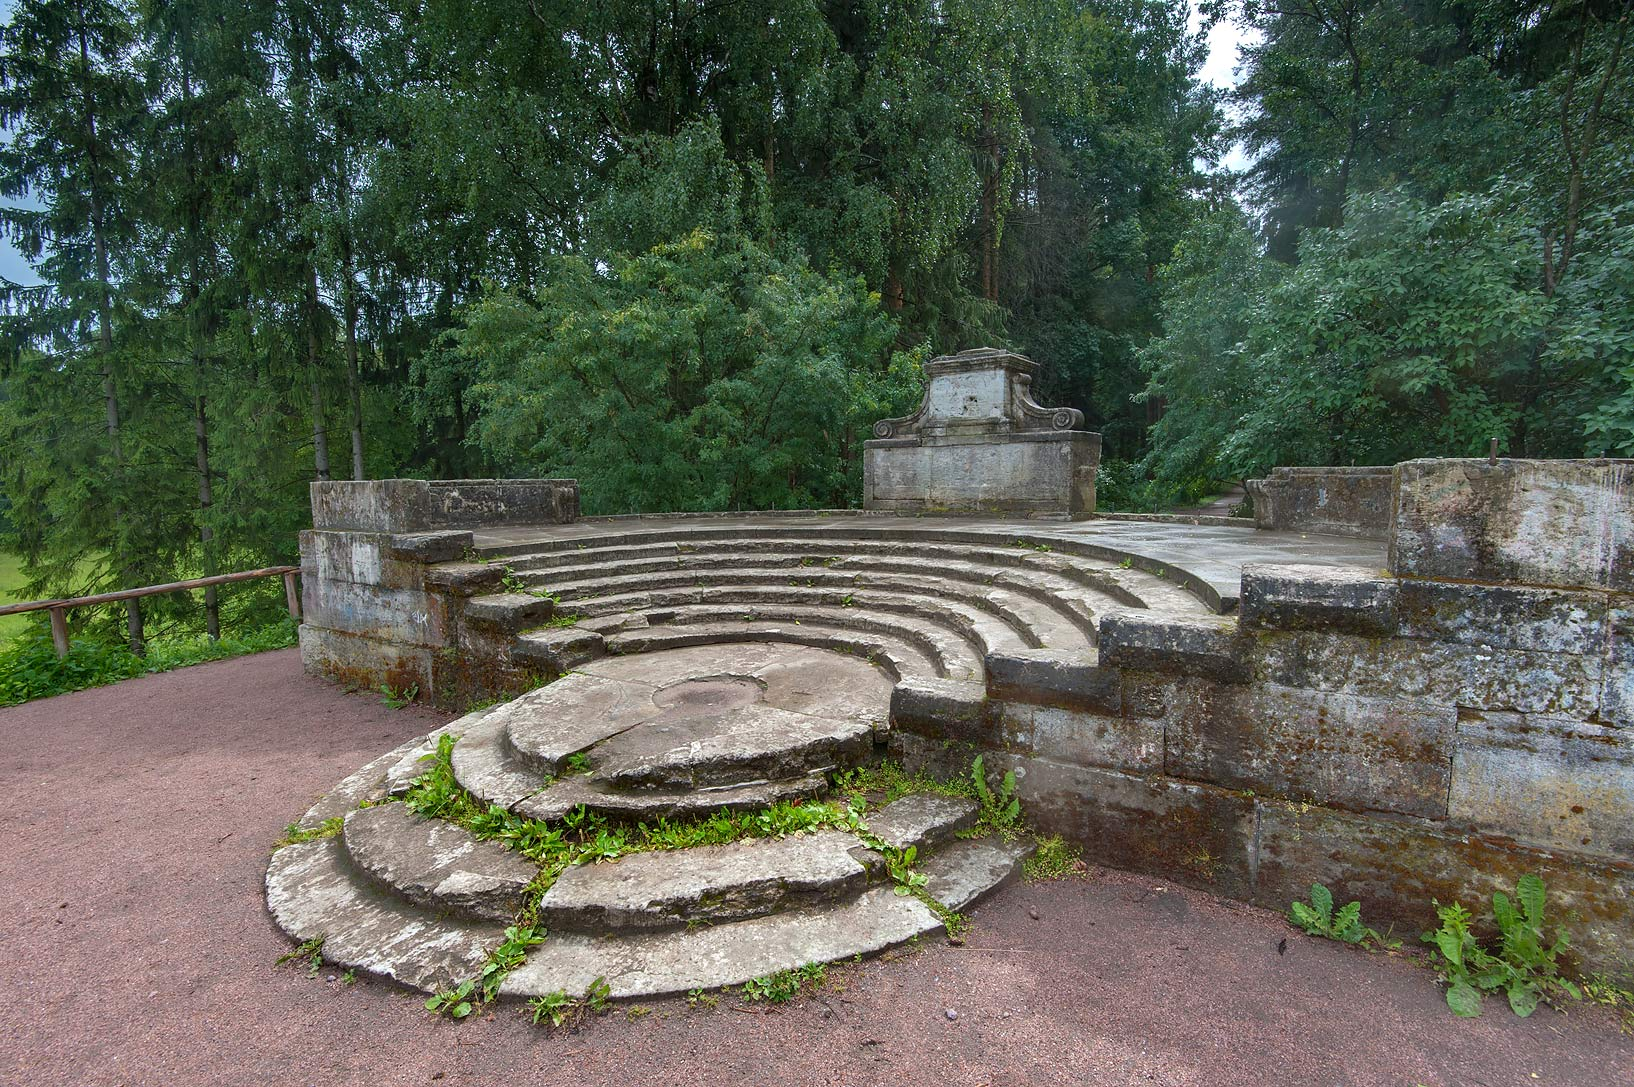 Ruins of amphitheater in Pavlovsk Park. Pavlovsk, a suburb of St.Petersburg, Russia